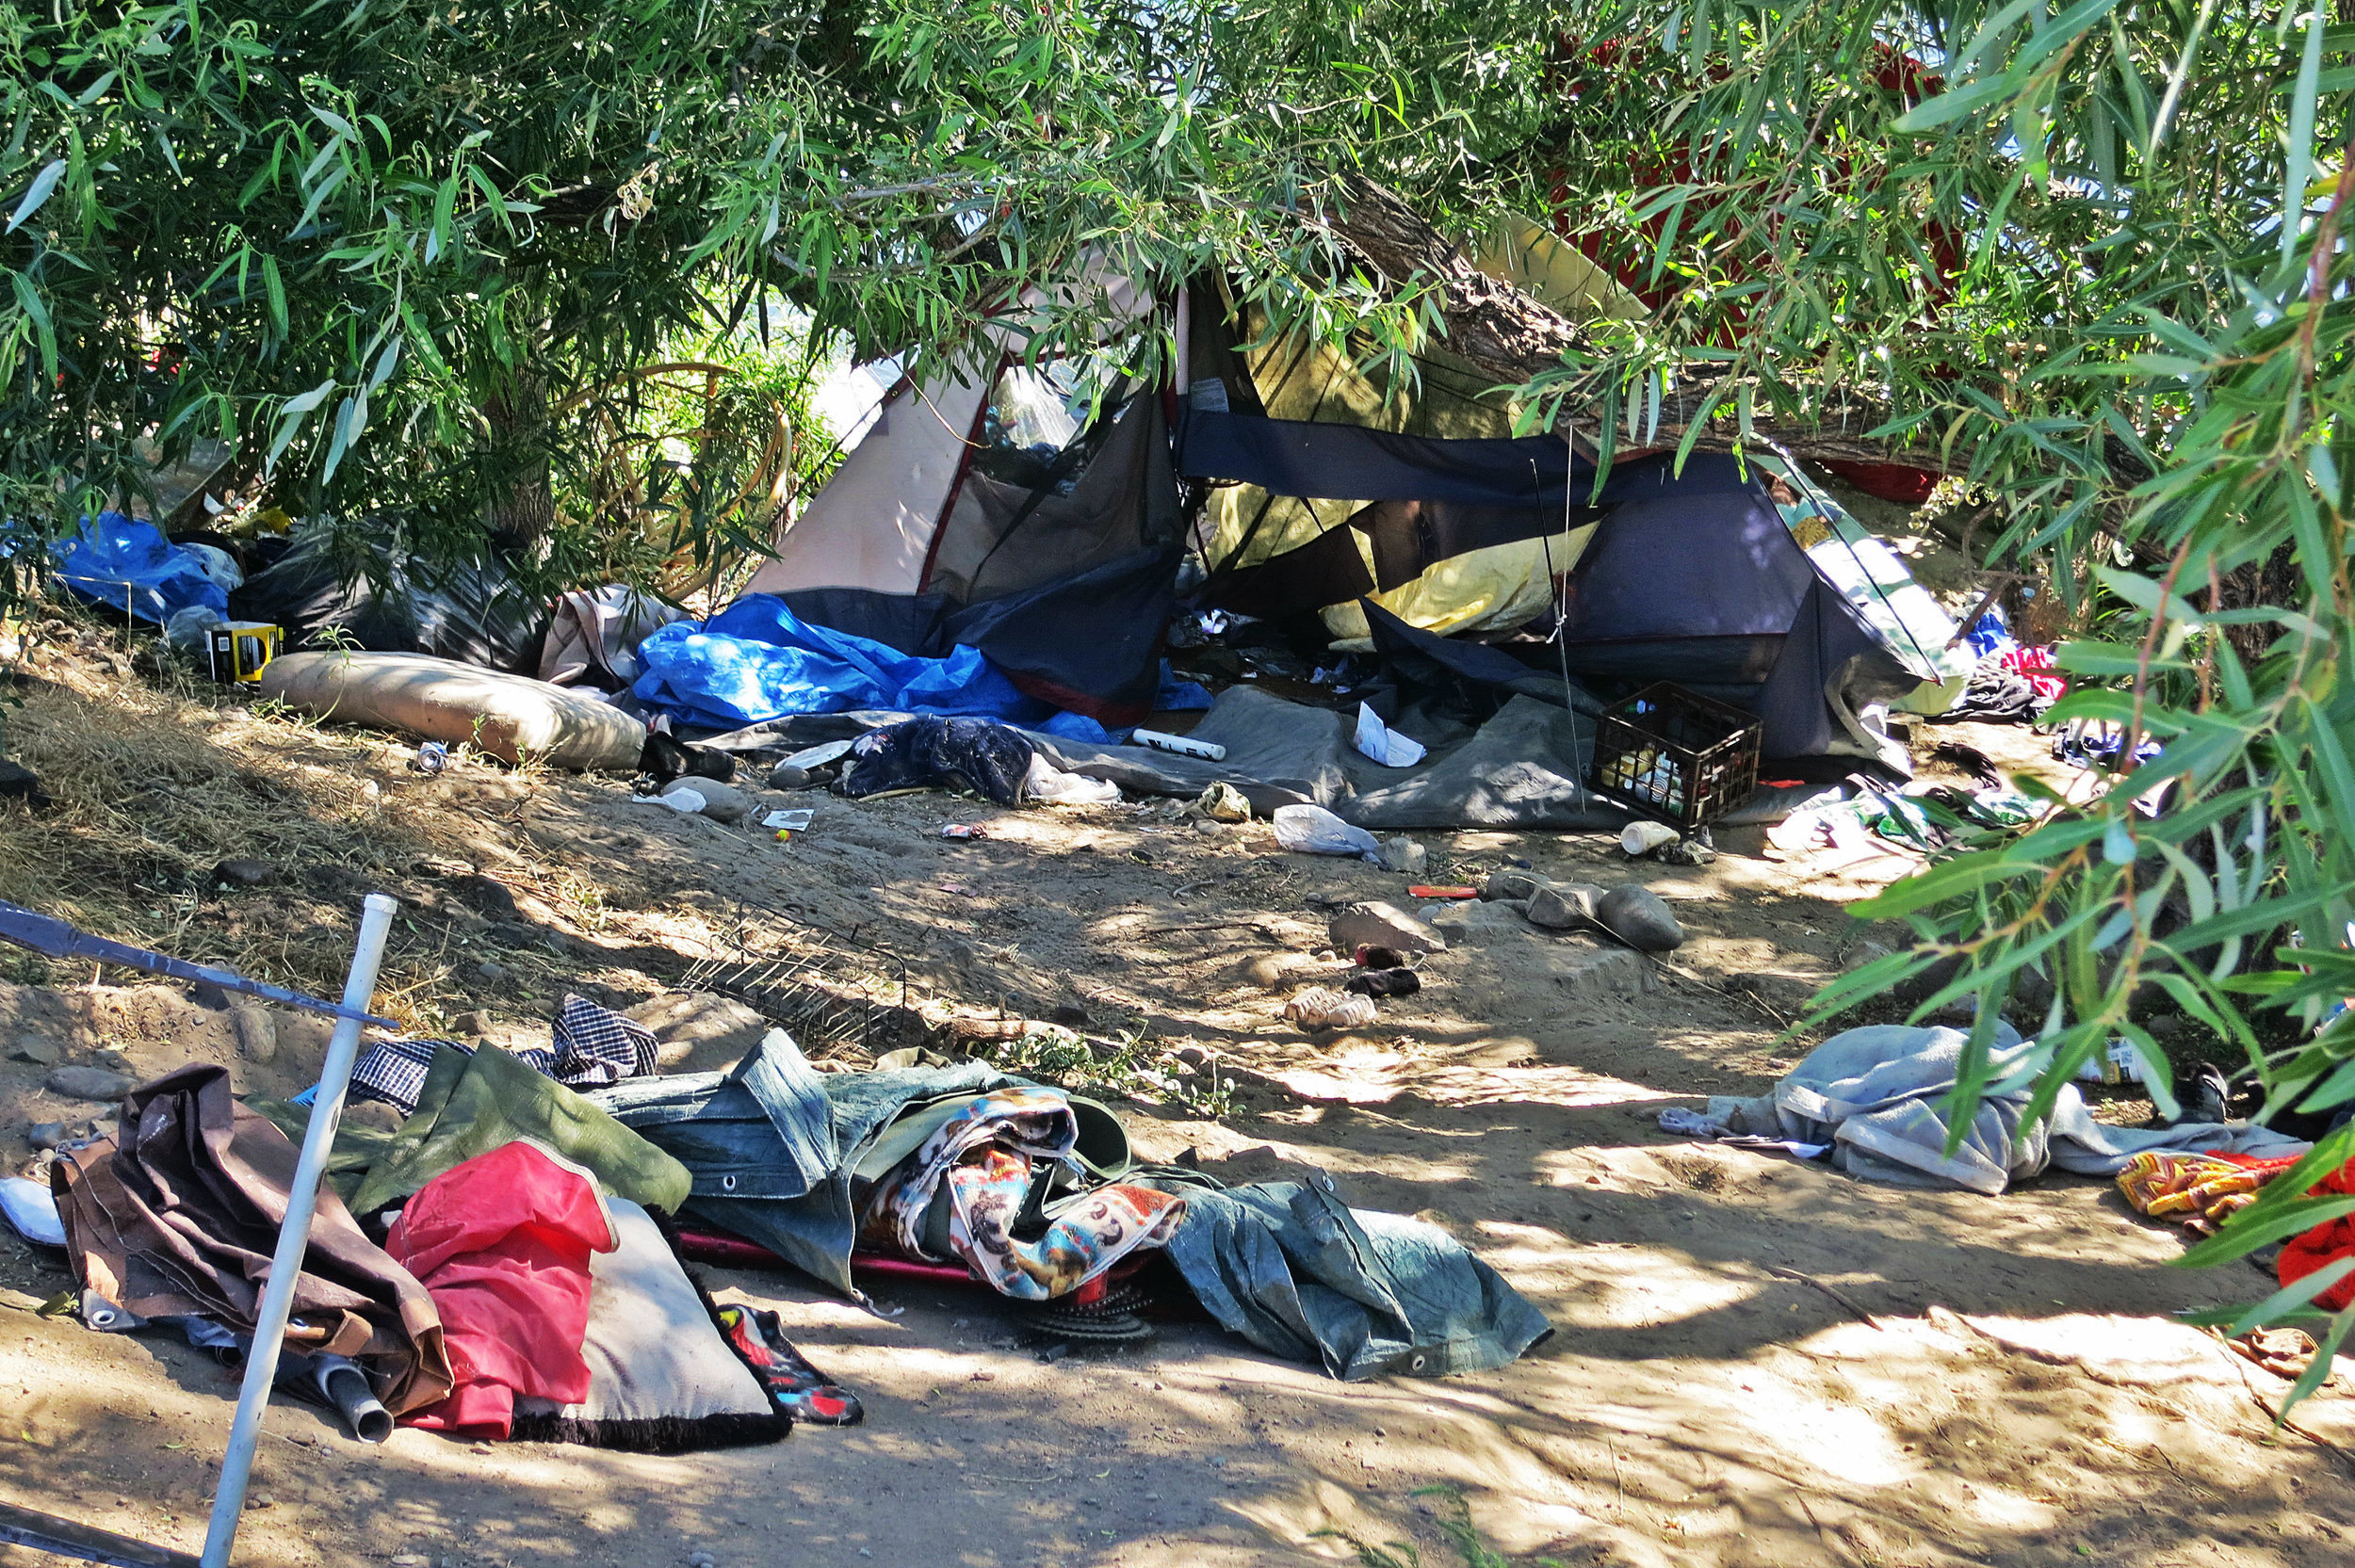 As homeless camping areas have increasingly been fenced off or disbanded in Reno, many tents are now on the Sparks side of the Truckee river bank. July 4, 2016